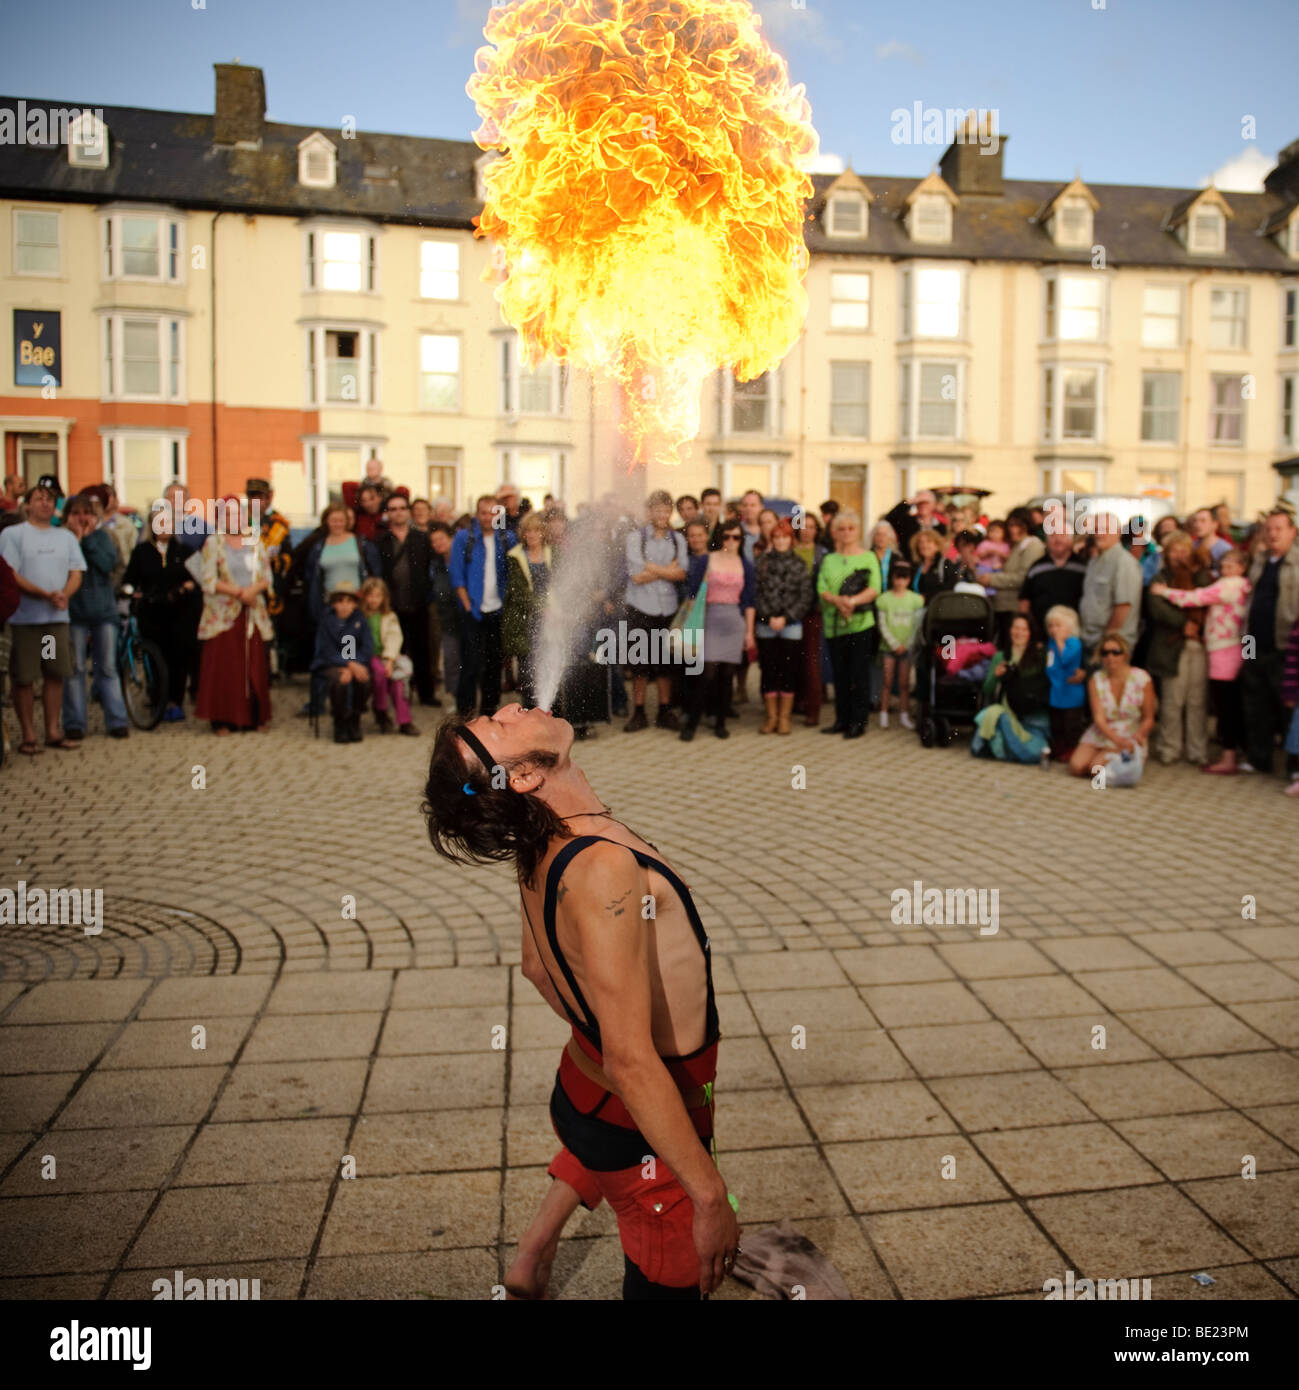 Fire Breather with De Propere Fanfare belgian marching band performing on the promenade, Aberystwyth Wales UK - Stock Image